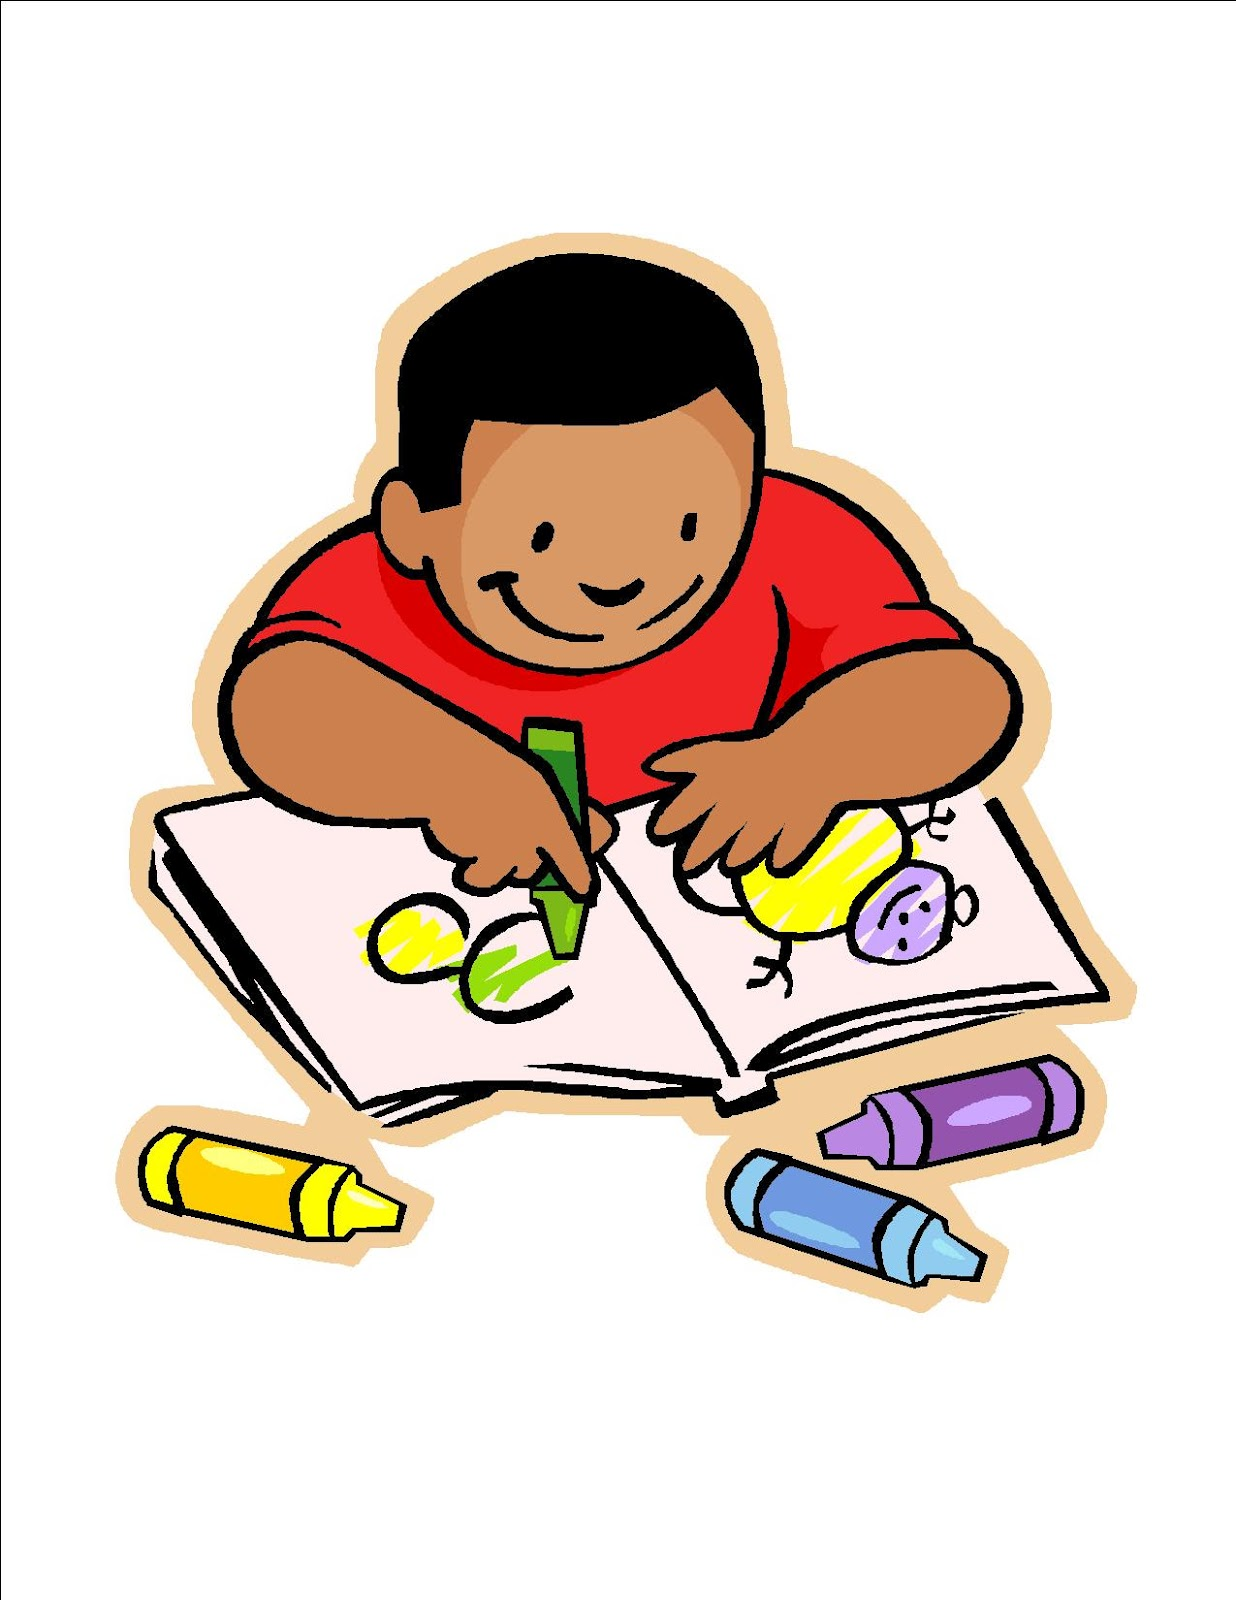 Free Drawing Cliparts, Download Free Clip Art, Free Clip Art.